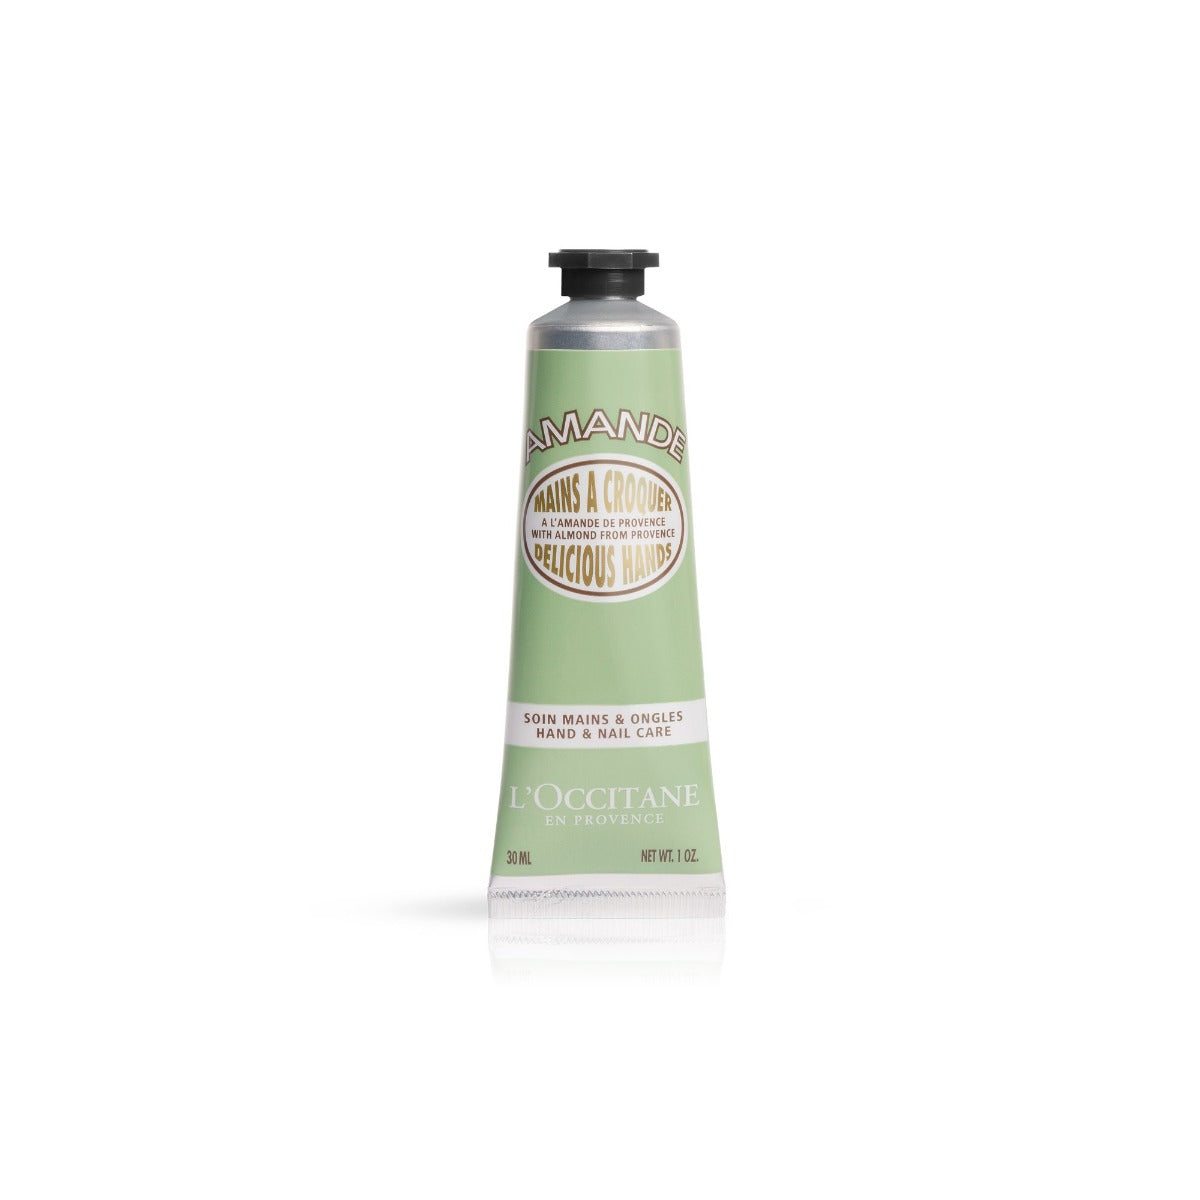 L'Occitane Almond Delicious Hands 30ml Travel Size